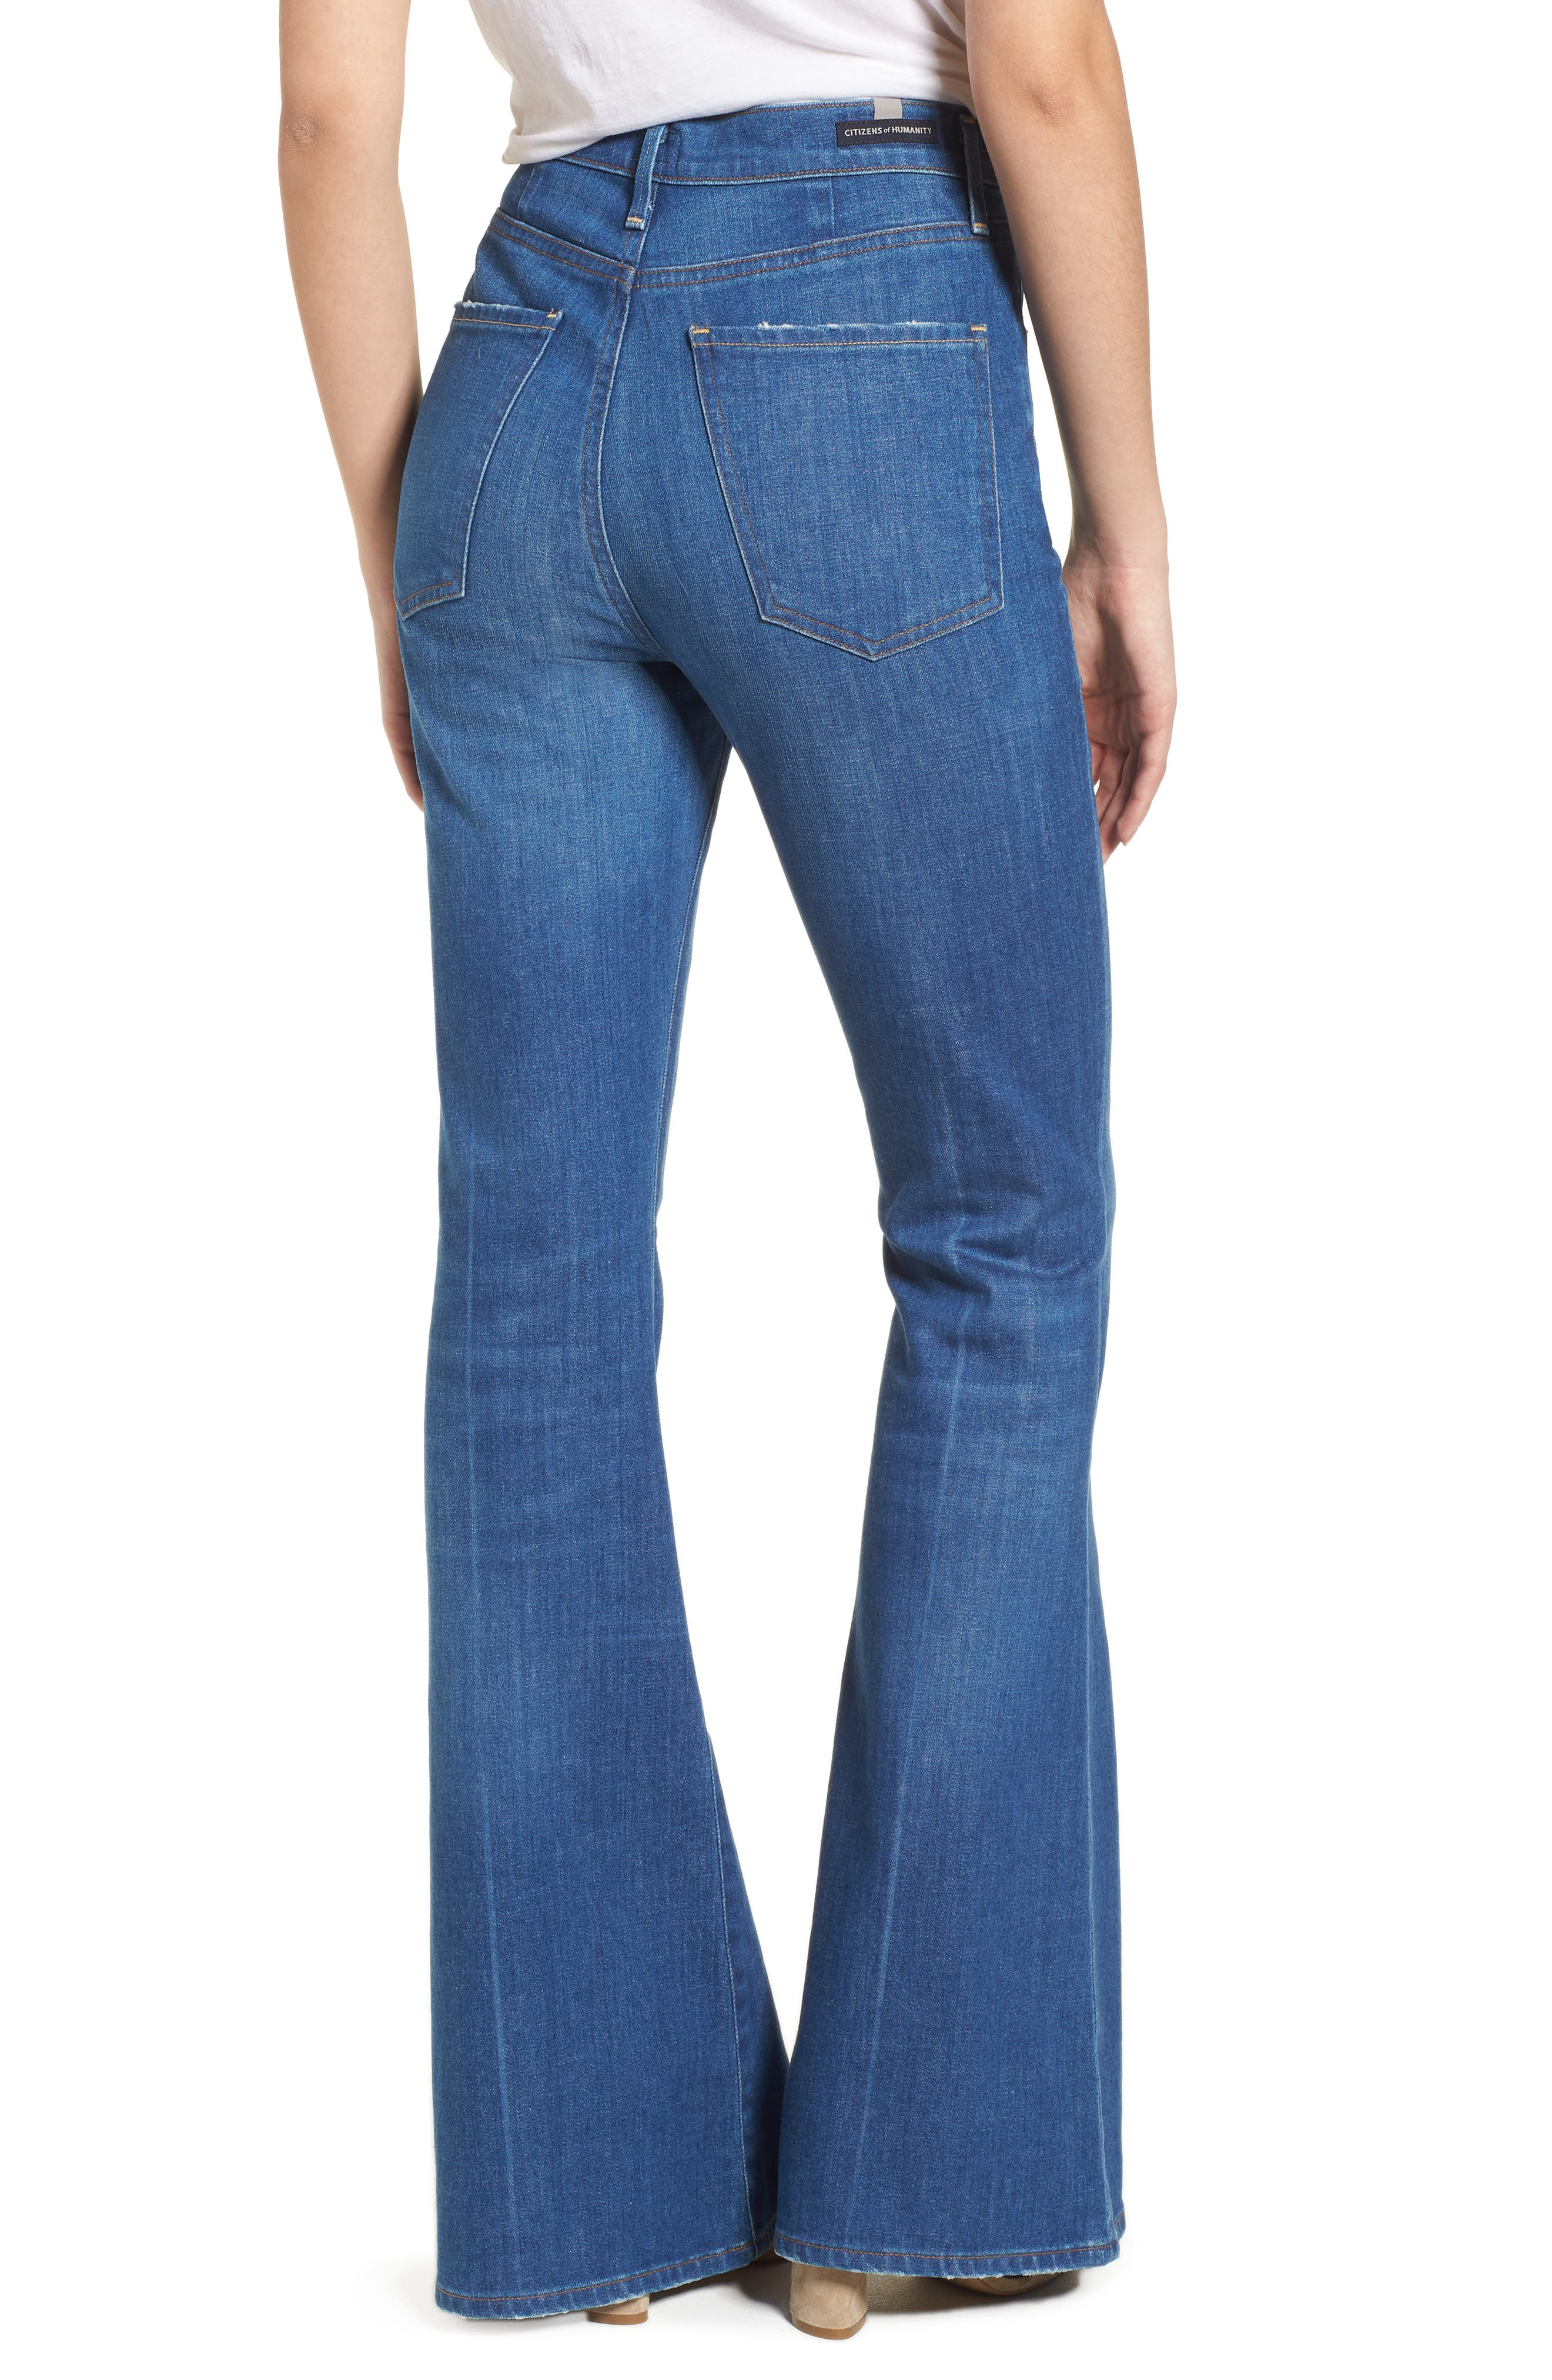 Cherie High Waist Bell Jeans,                             Alternate thumbnail 2, color,                             Frampton